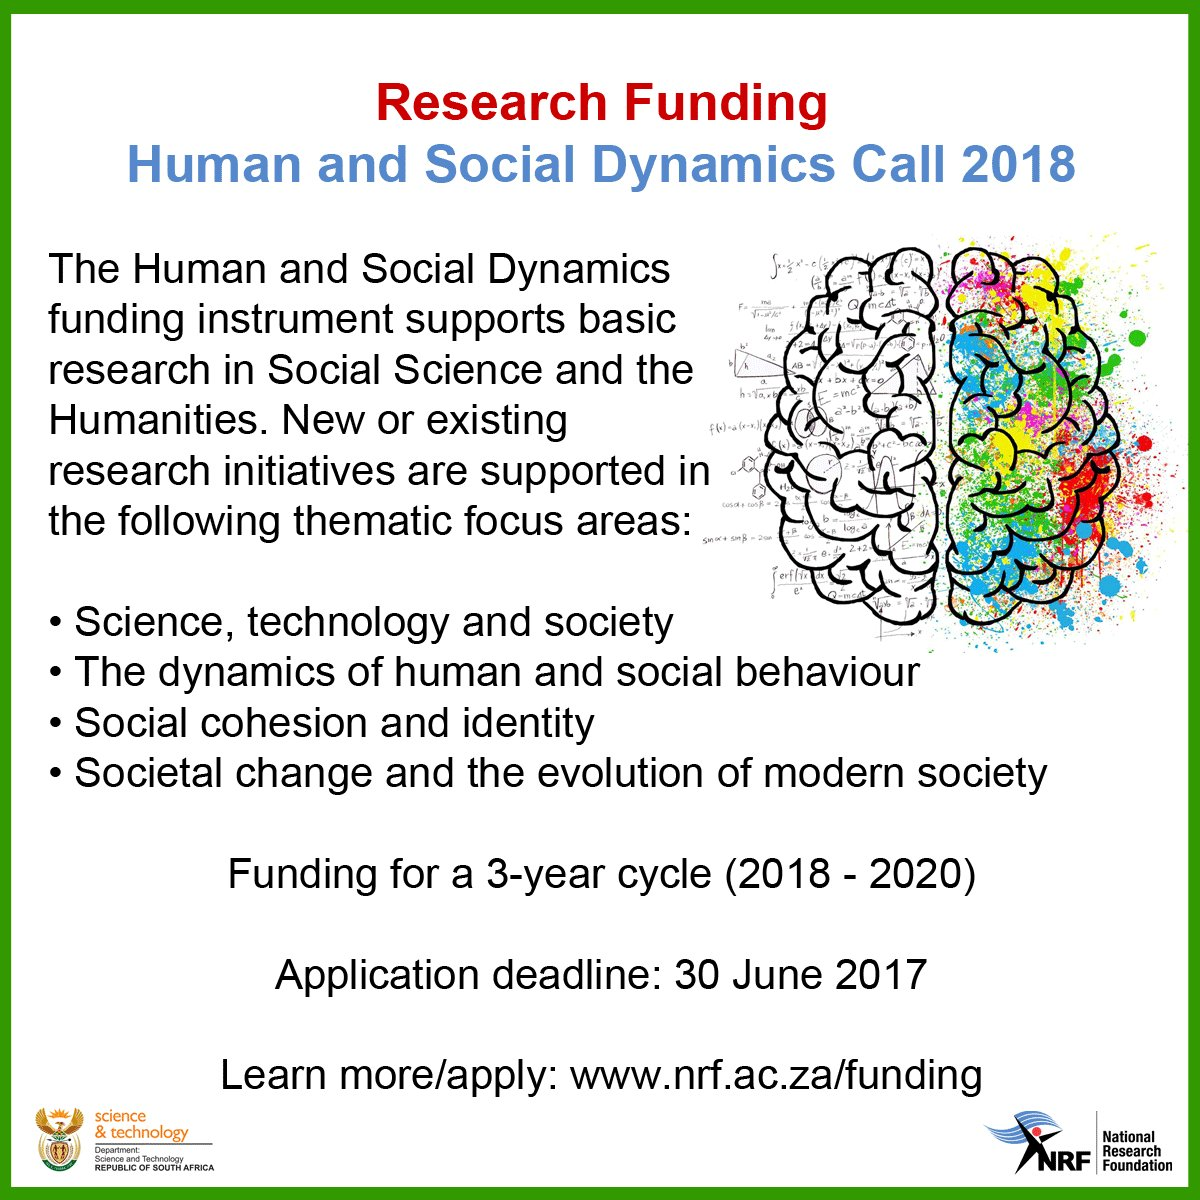 #Research #Funding: Human and Social Dynamics 2018. Learn more/apply:  http:// bit.ly/2qqaXw8  &nbsp;   #SocialScience #Humanities<br>http://pic.twitter.com/5ZvWy8oXP7